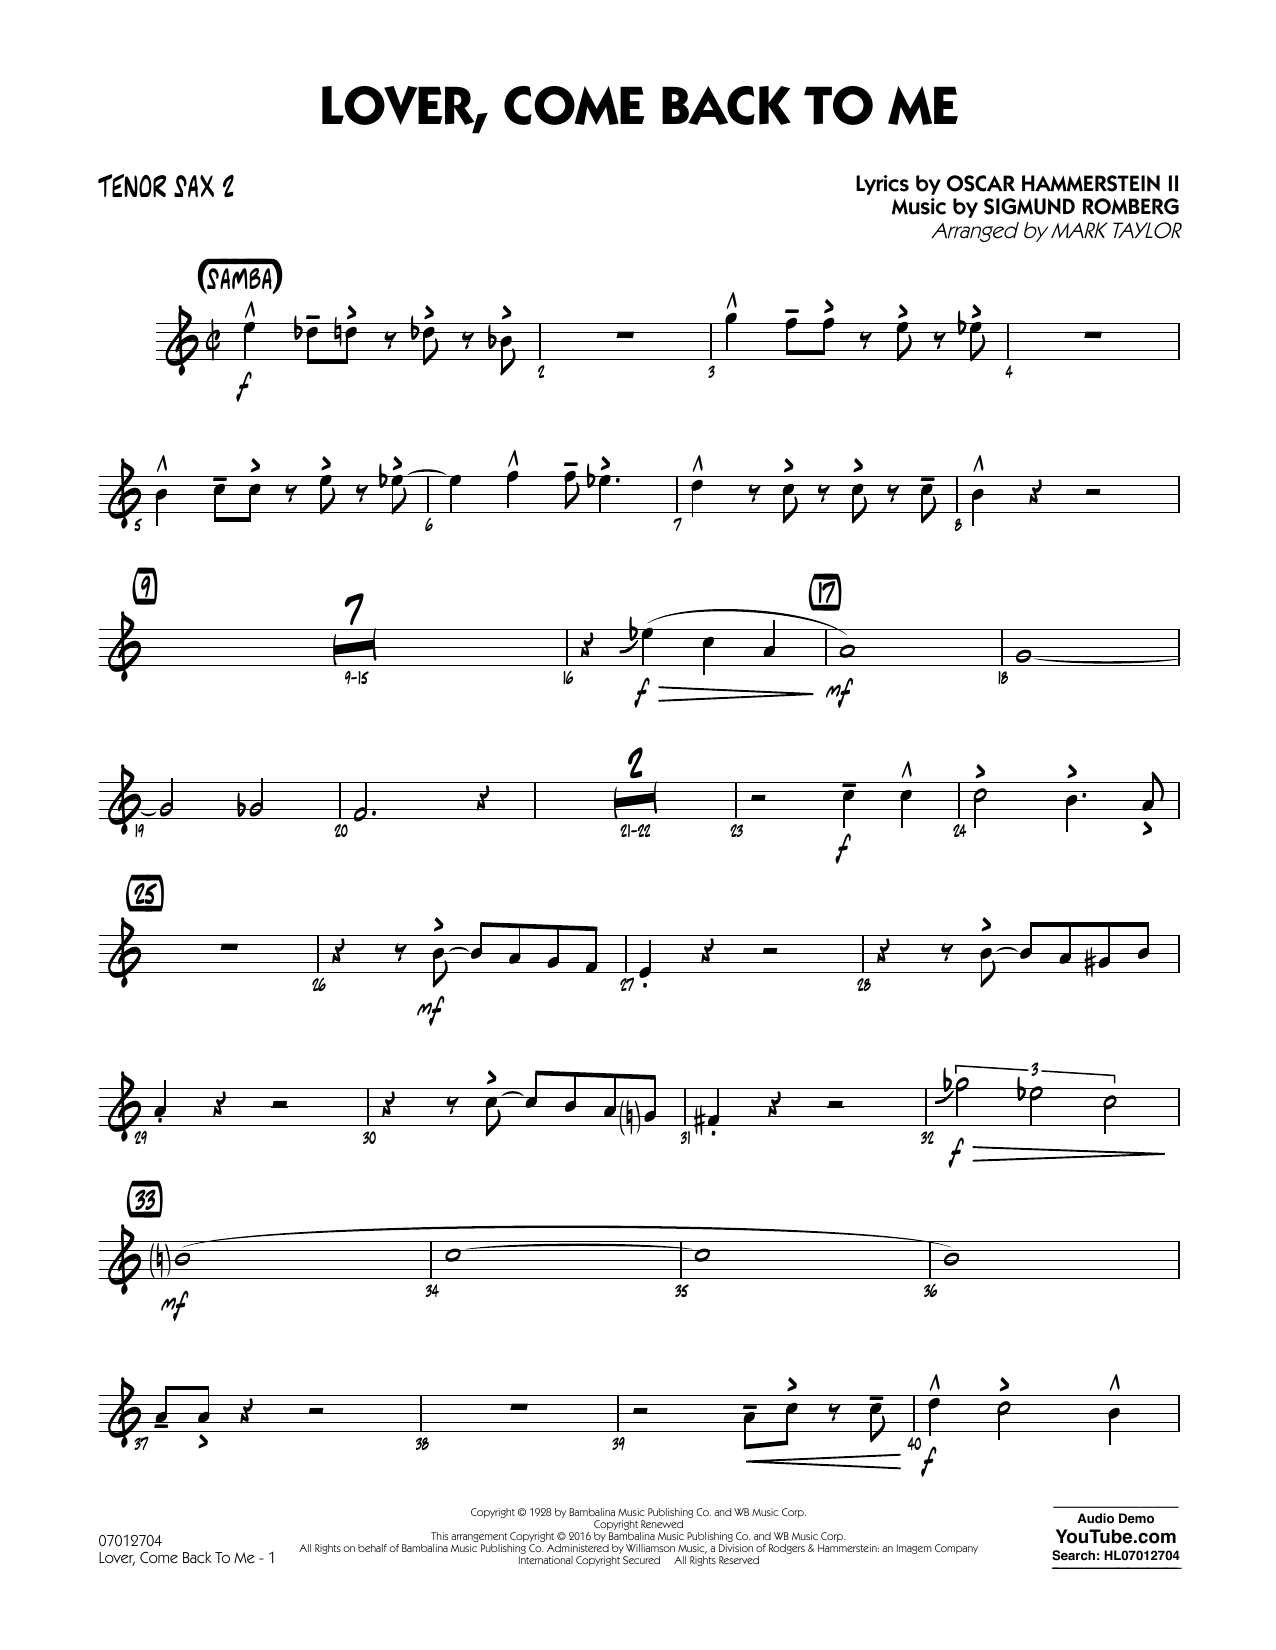 Lover Come Back to Me (Key: B-Flat) - Tenor Sax 2